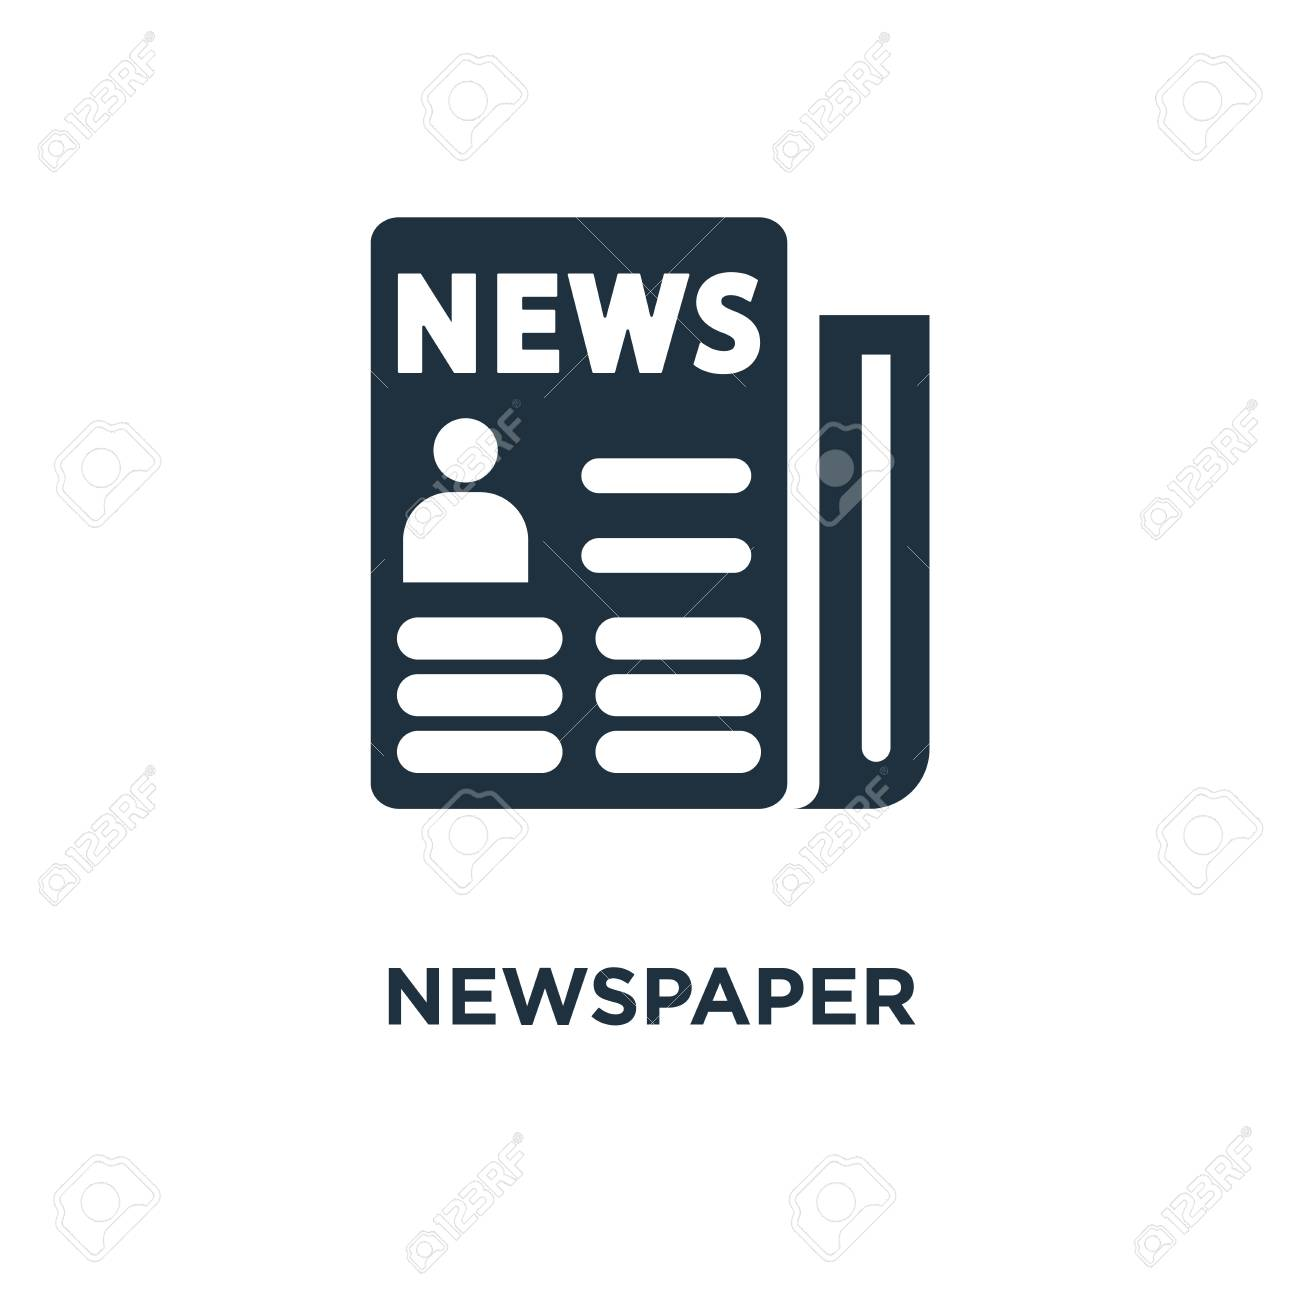 newspaper icon. black filled vector illustration. newspaper symbol